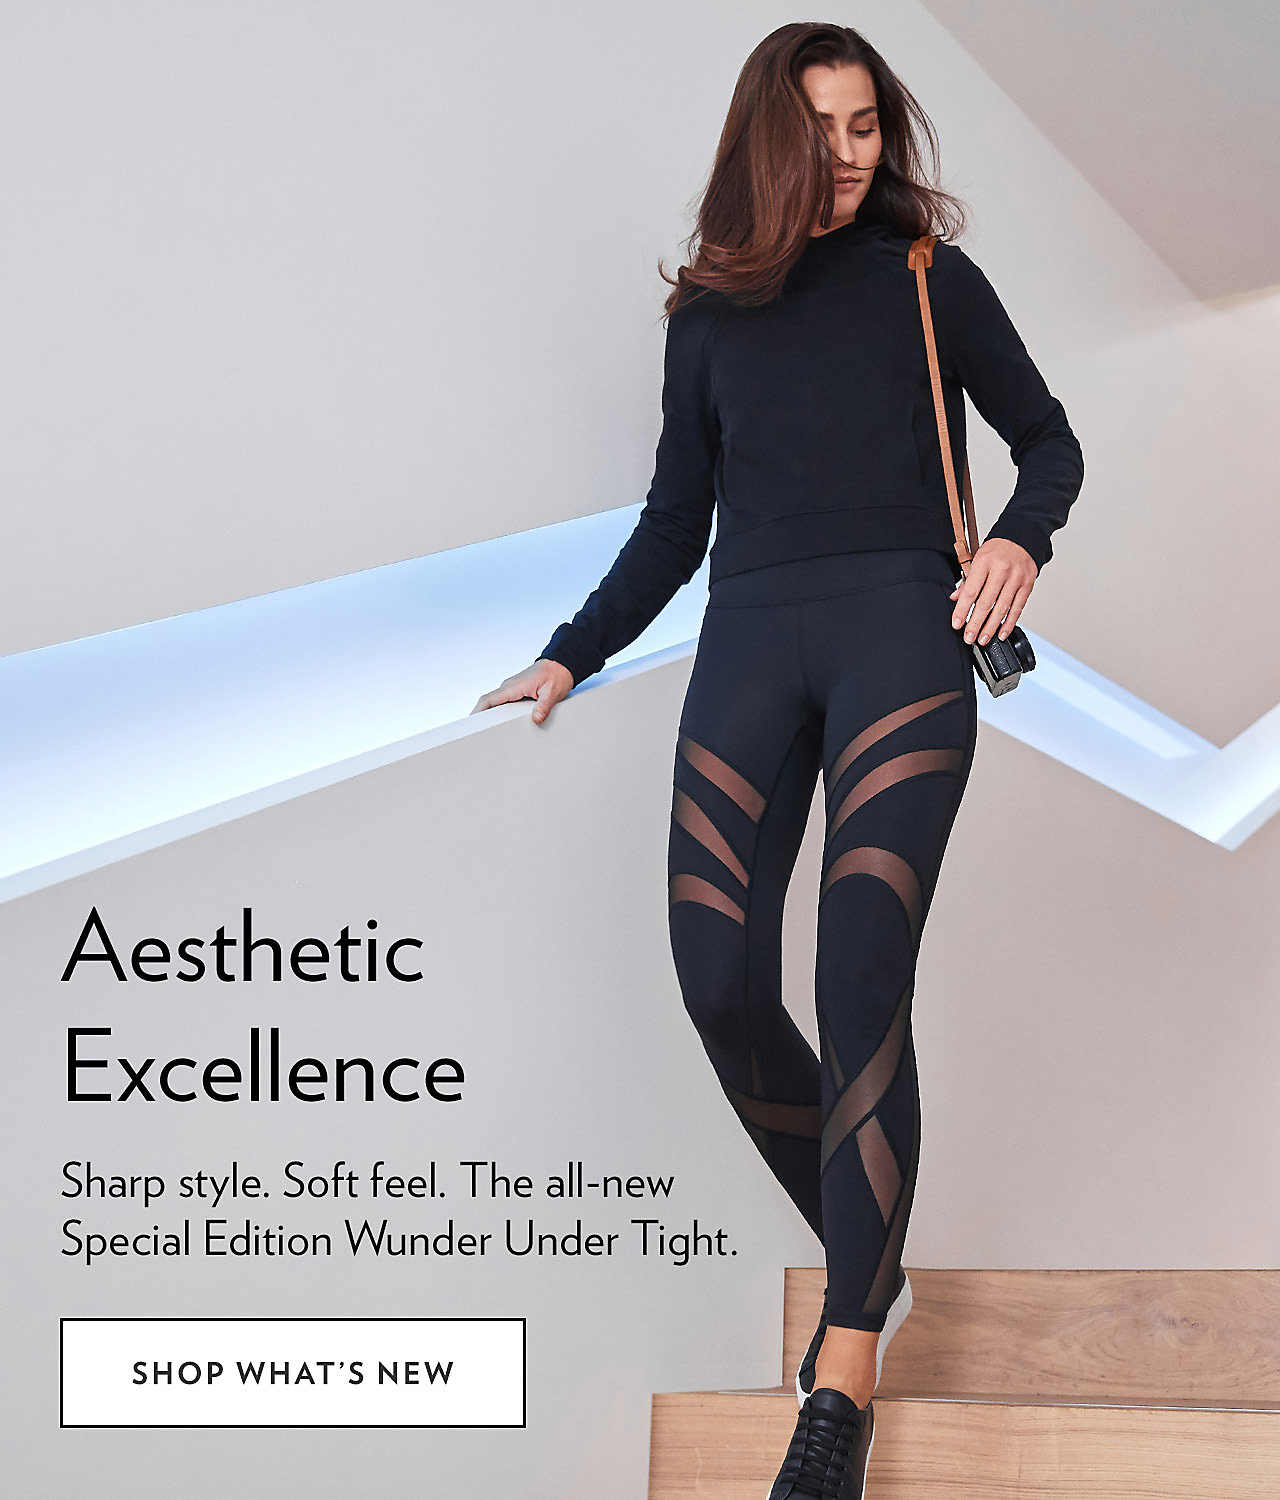 Aesthetic Excellence - SHOP WHATS NEW